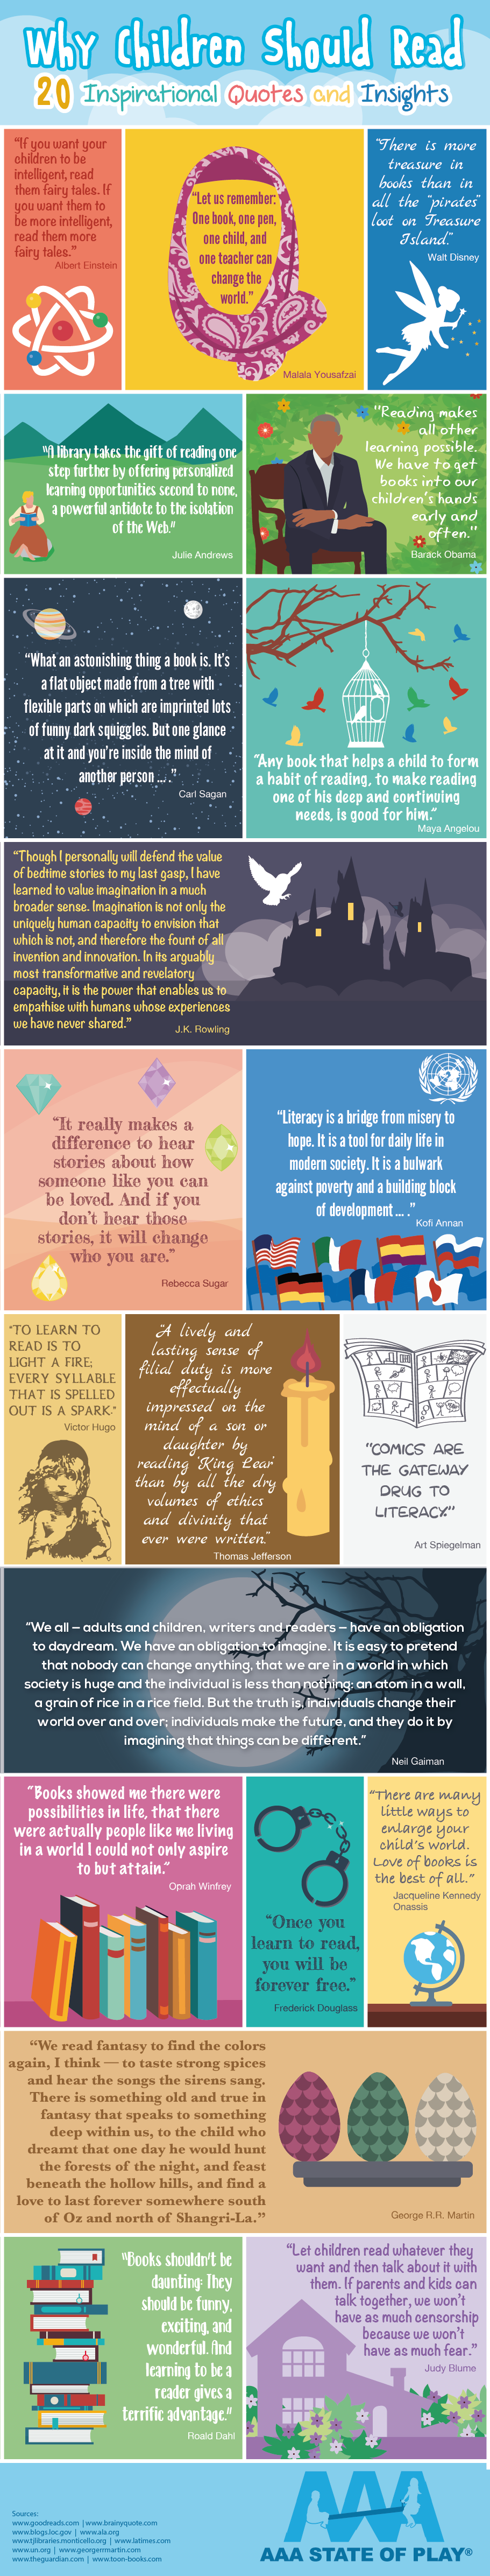 20 Inspirational Thoughts on Why Childhood Reading Must Be Fostered - Infographic